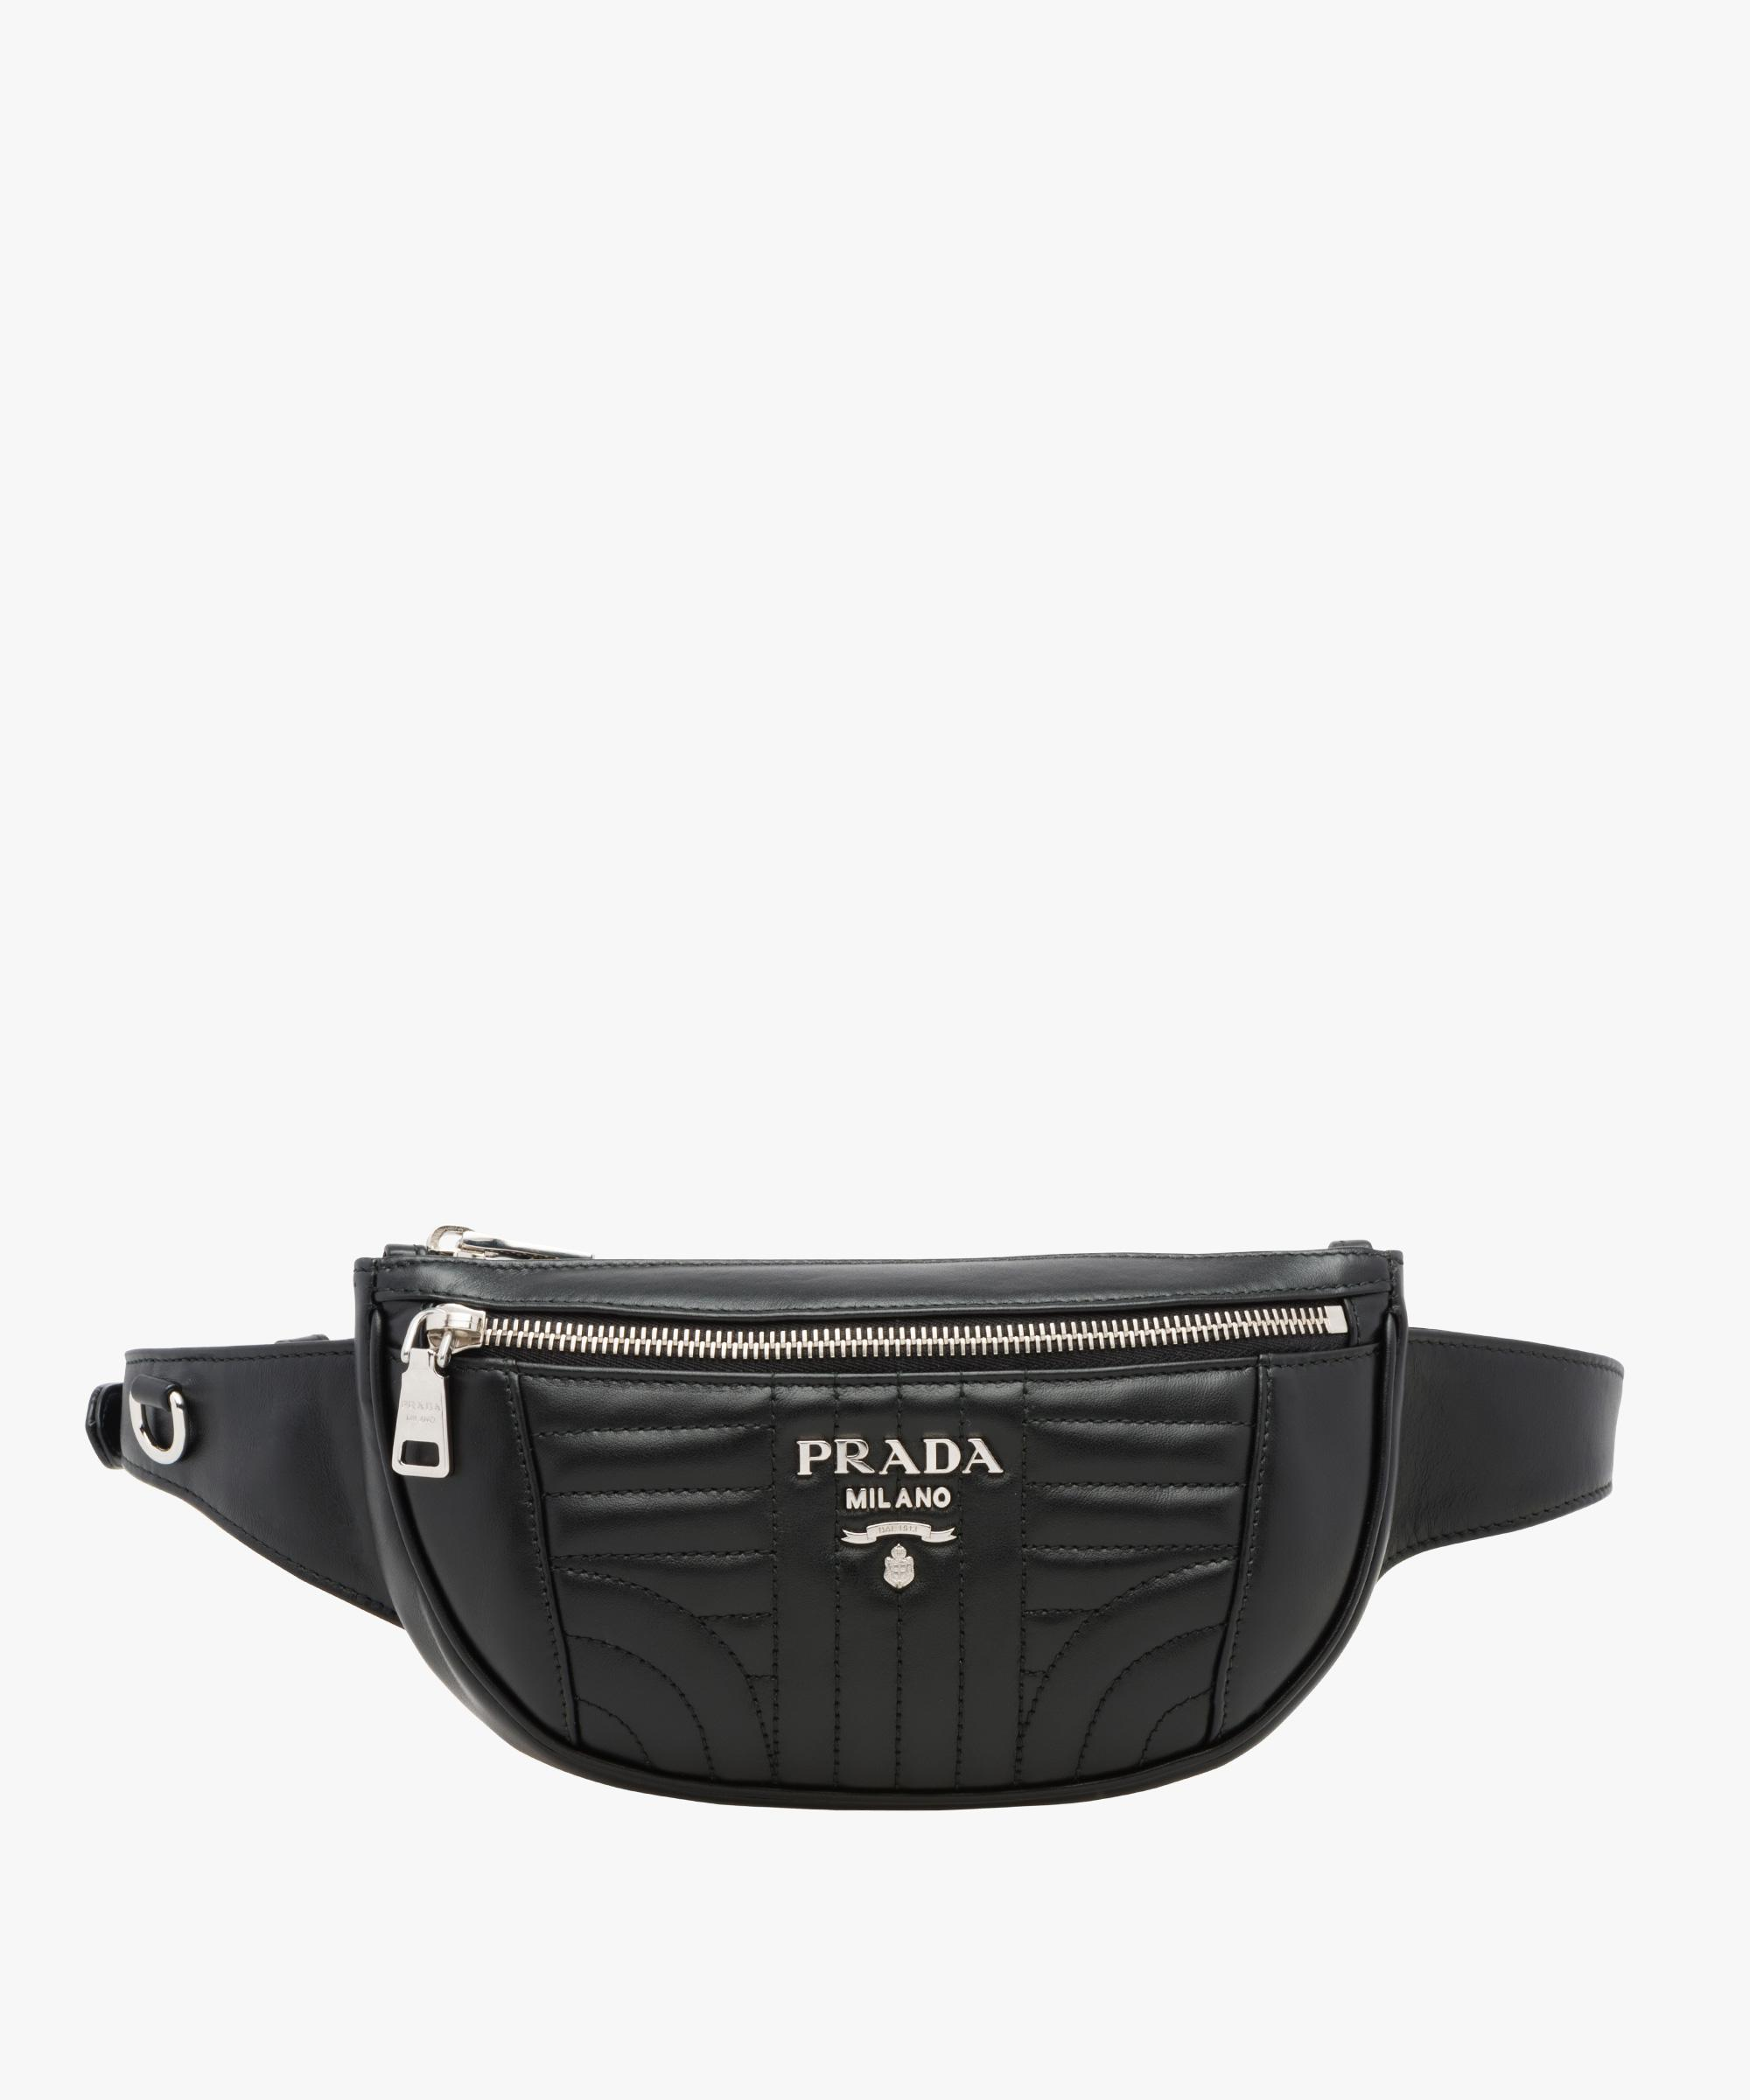 ae8d34a21a7725 Gallery. Previously sold at: Prada · Women's Belt Bags